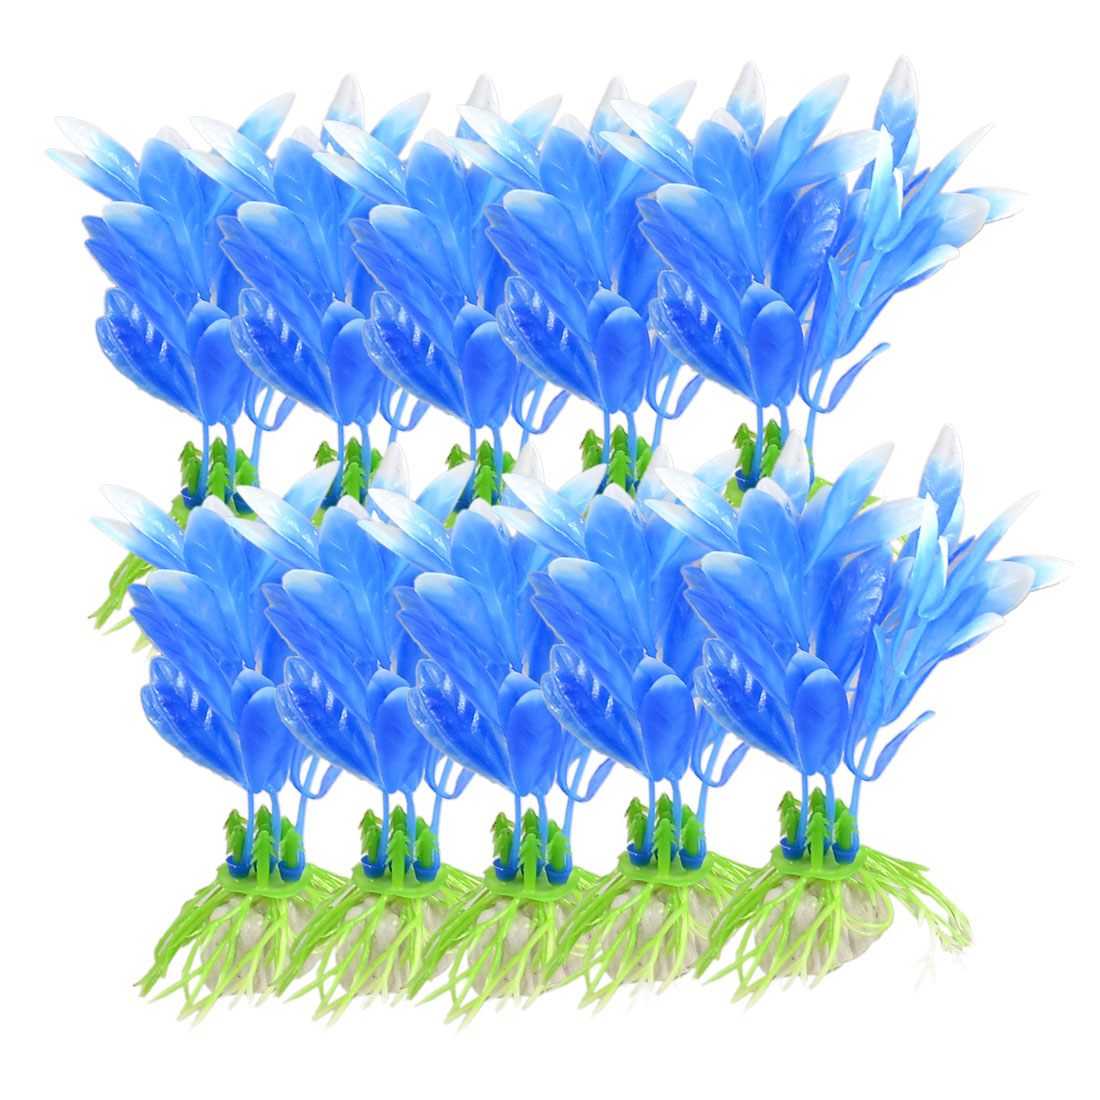 "10 Pcs Ceramic Base White Blue Plastic Grass Decoration 3.5"" for Fish Tank"